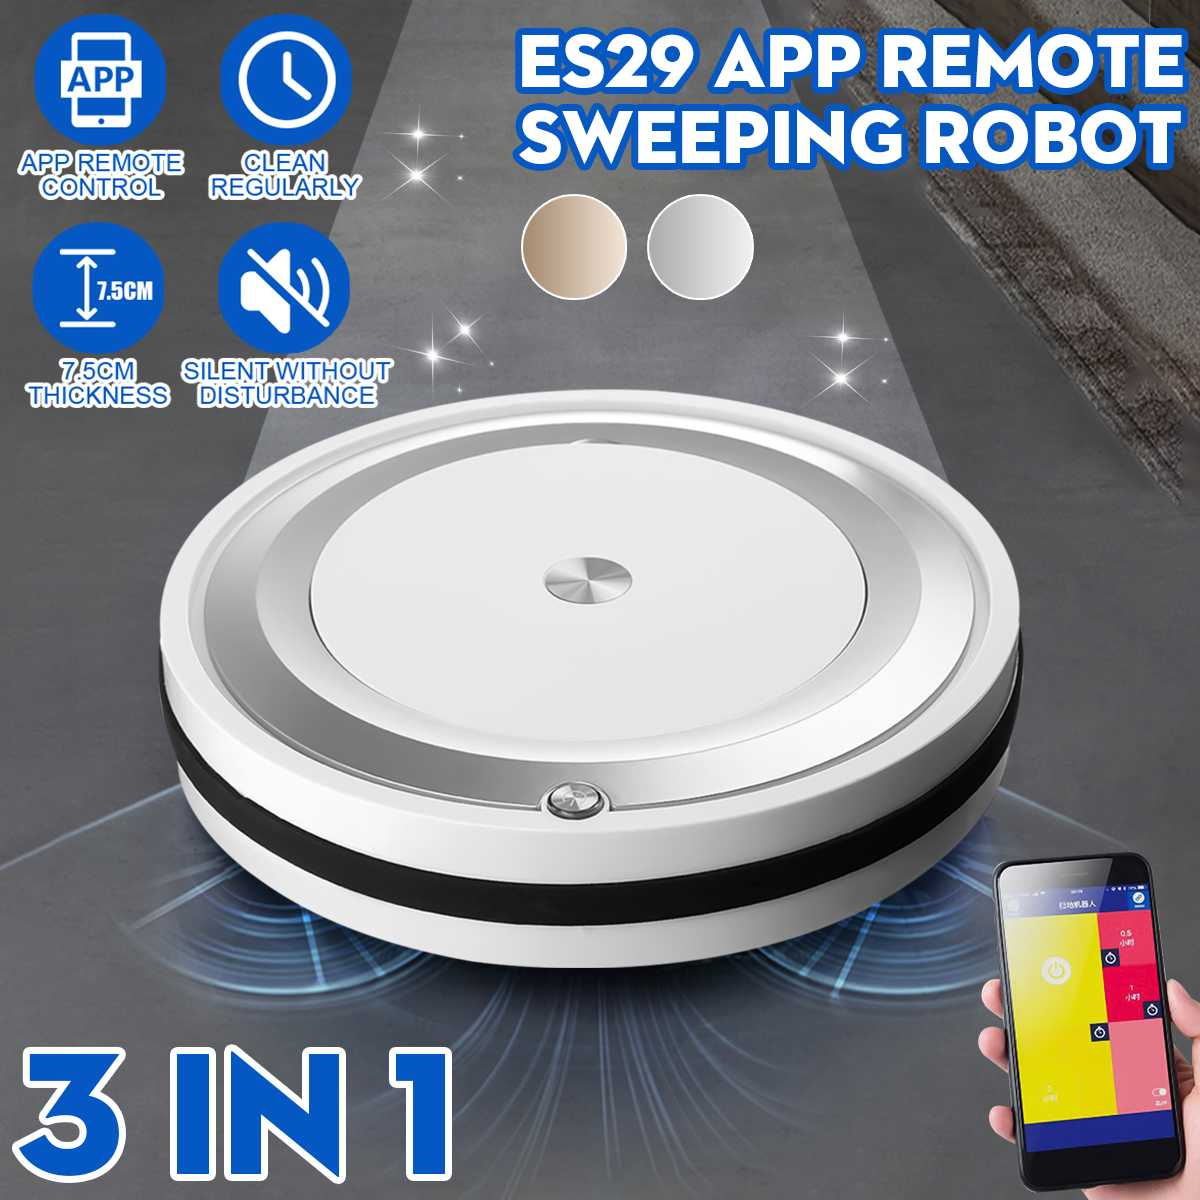 3 In 1 Multifunction Sweep Mopping Robot Vacuum Cleaner Rechargeable Dry Wet...